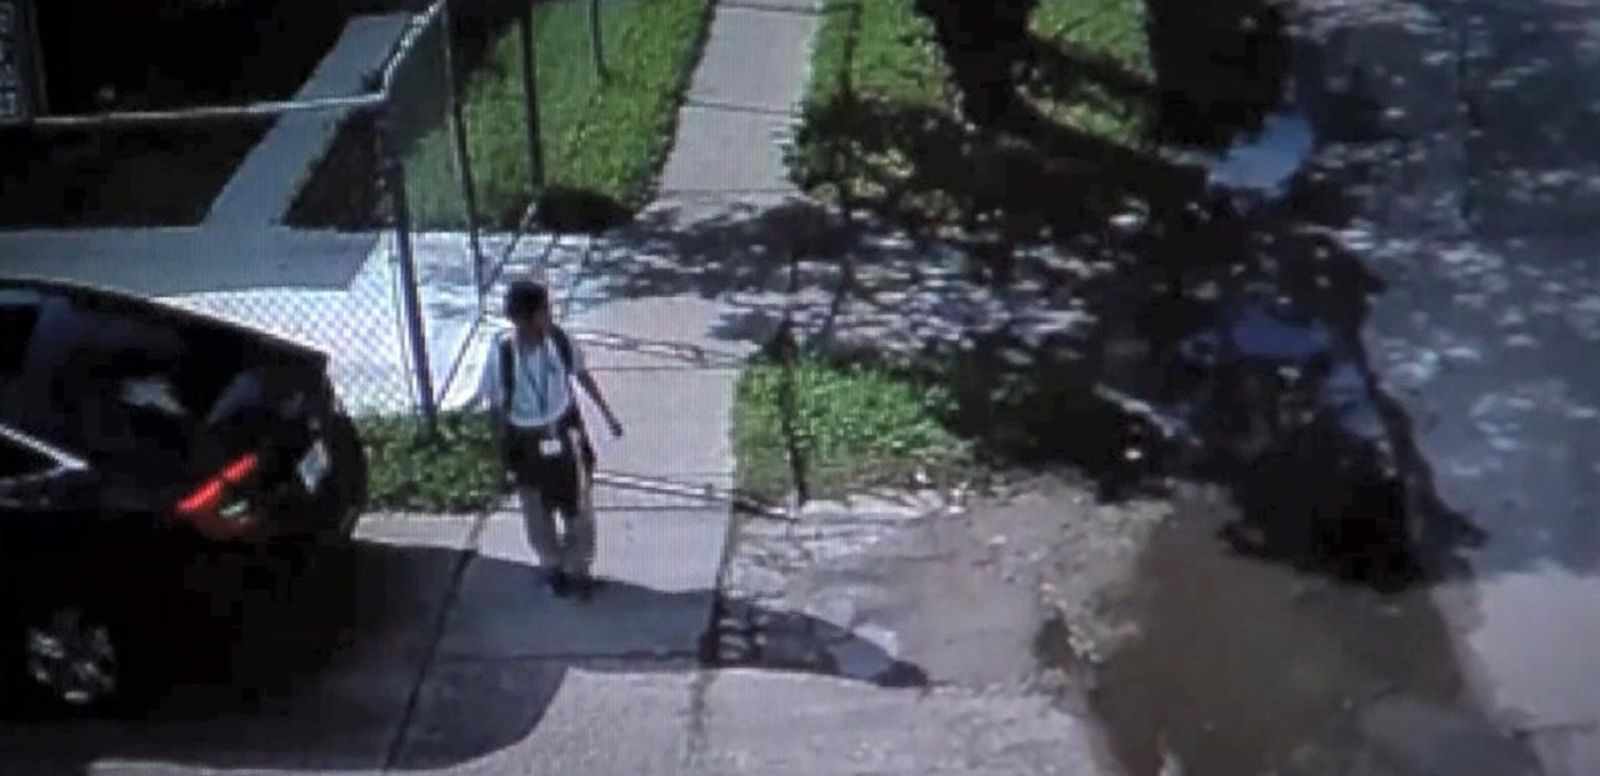 VIDEO: Houston Police Turns to Citizens to Help Find Murderer Who Stabbed 11-Year-Old